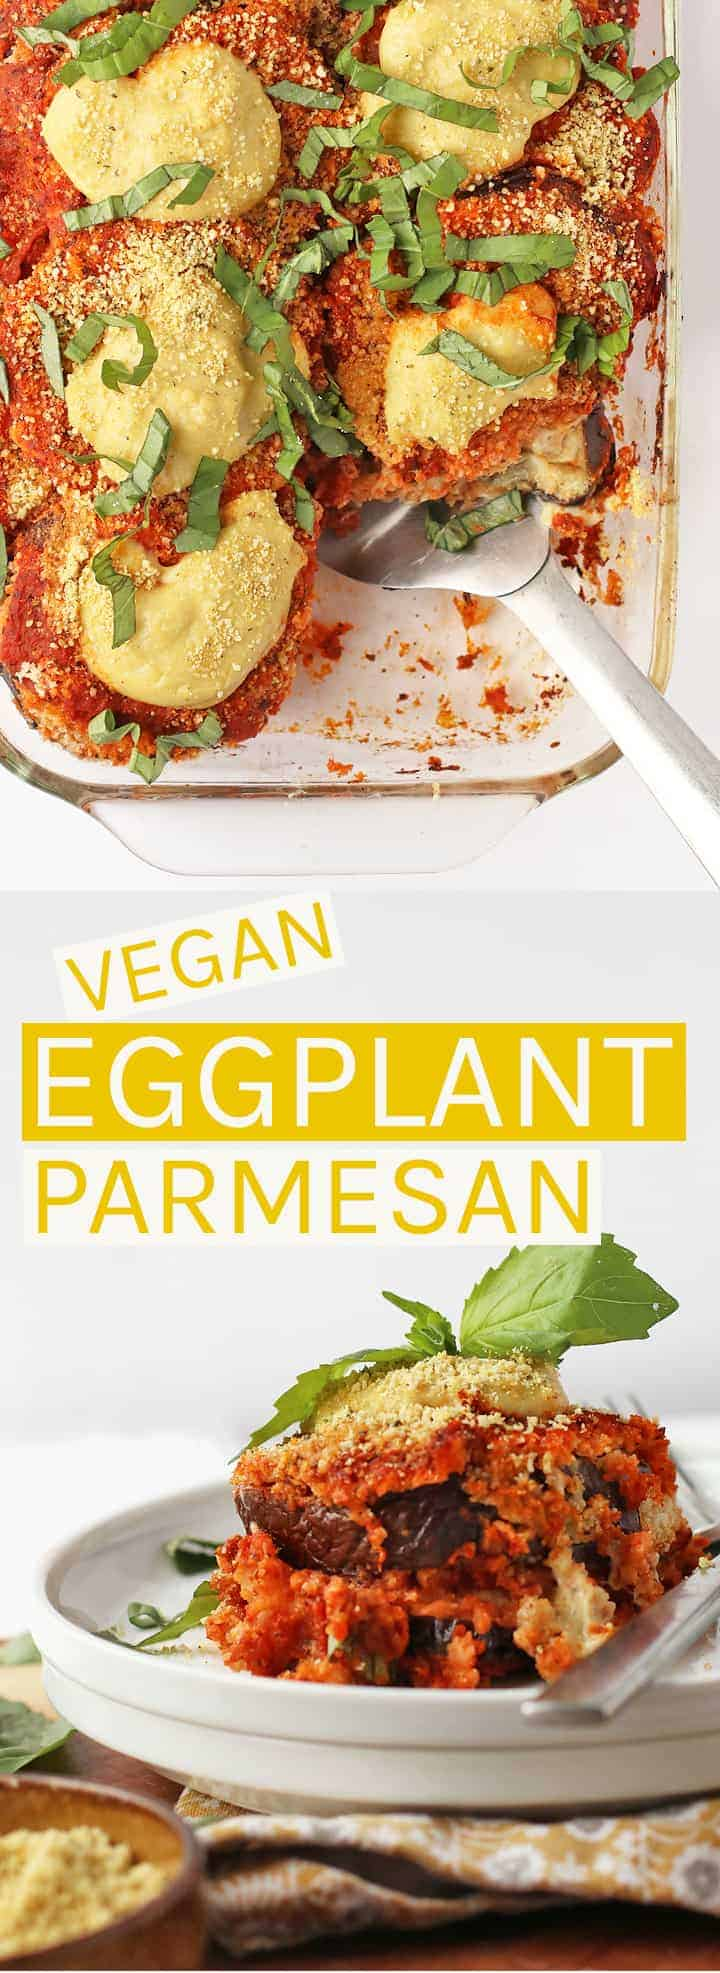 This vegan Eggplant Parmesan is made with two different homemade nut-based cheeses, fresh marinara sauce, and parmesan breaded eggplant for a hearty and delicious dinner the whole family will love. #vegan #veganrecipes #plantbased